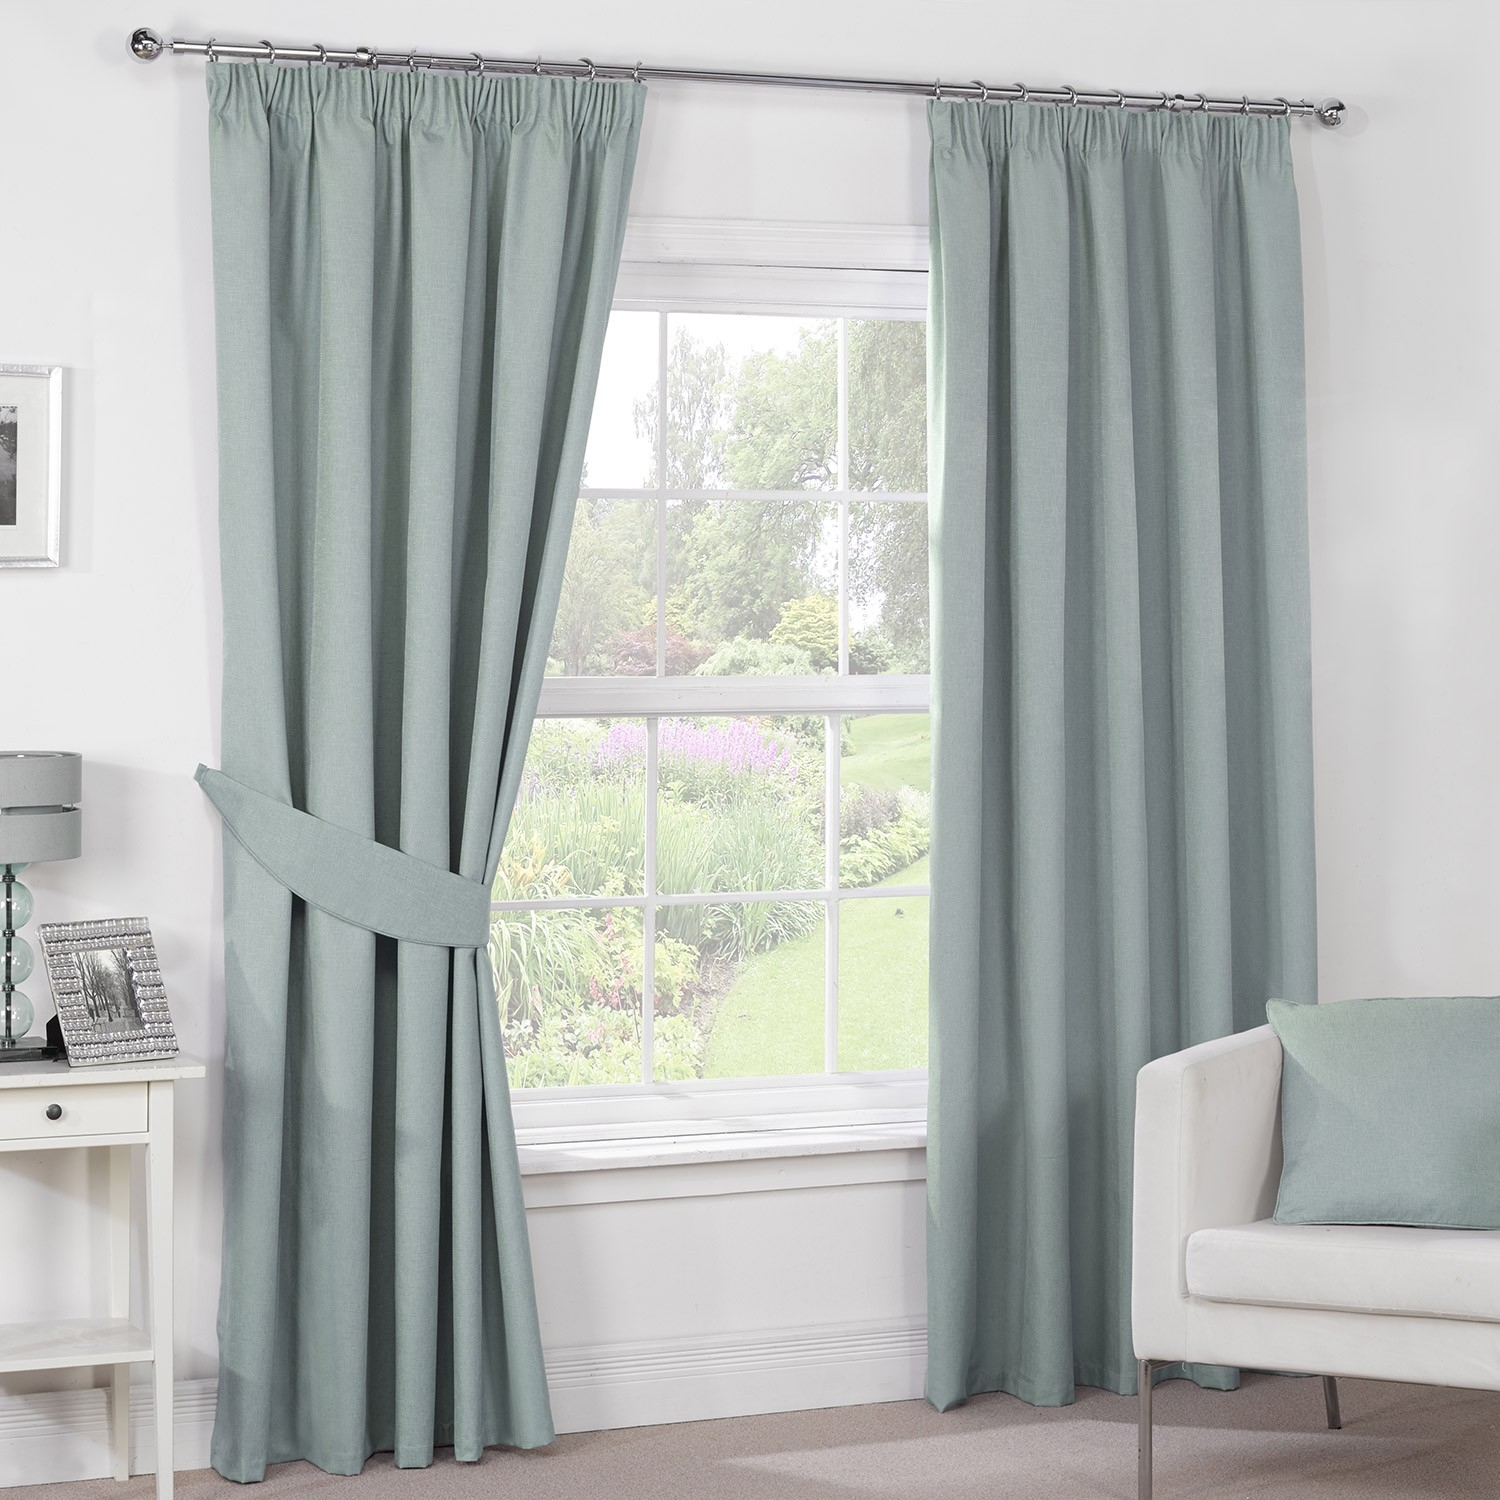 Luna Duck Egg Luxury Blackout Pencil Pleat Curtains Pair Intended For Duck Egg Blue Blackout Curtains (View 10 of 15)